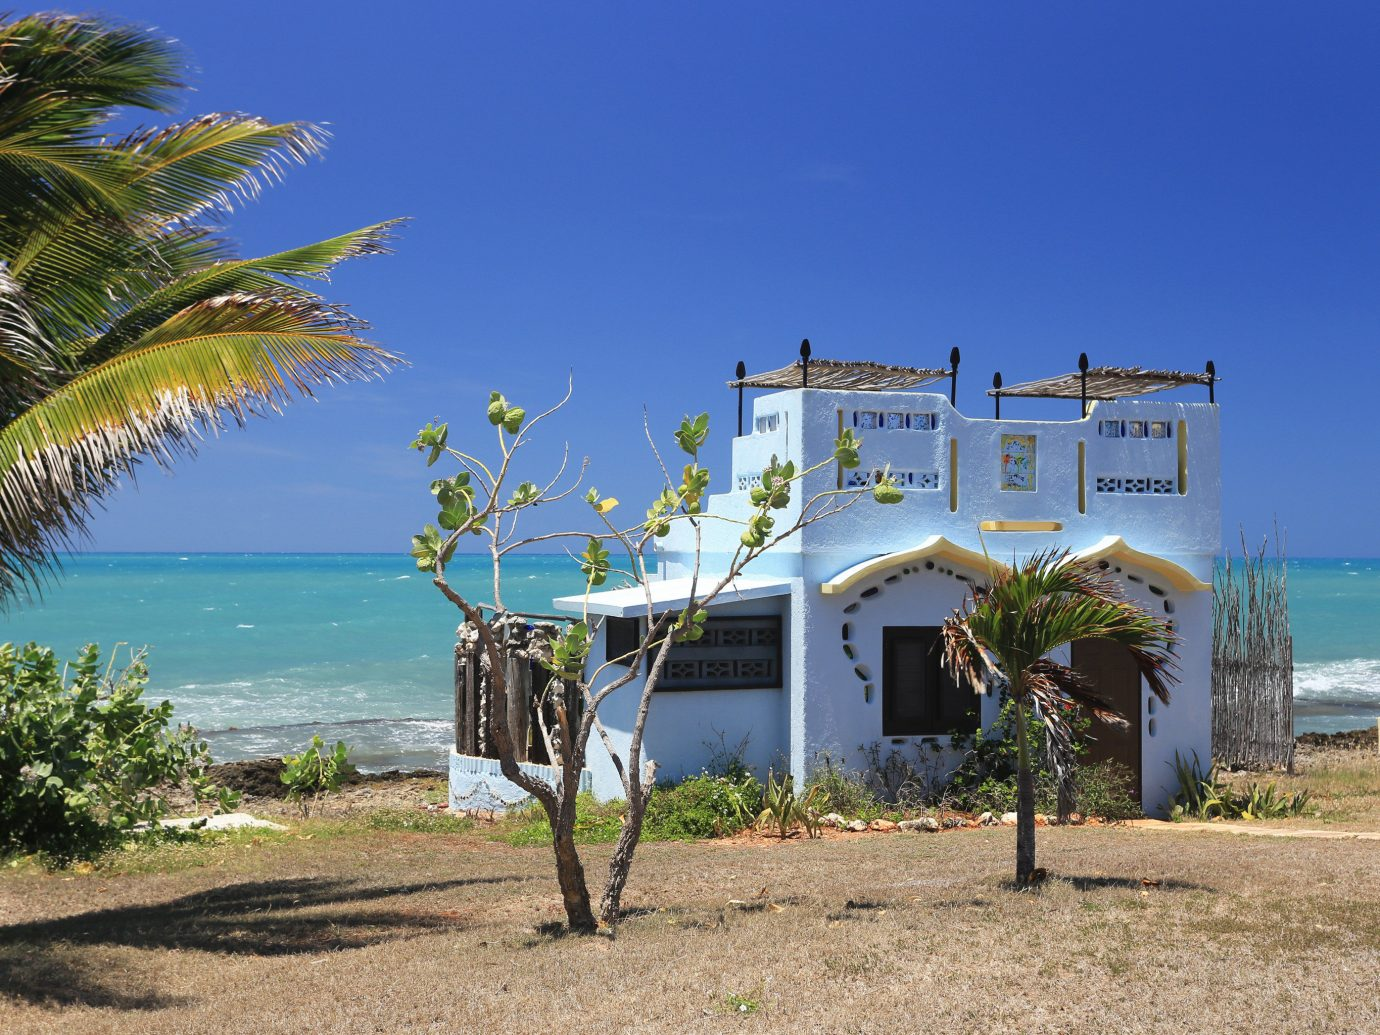 Exterior view of a ocean side cottage in Jamaica